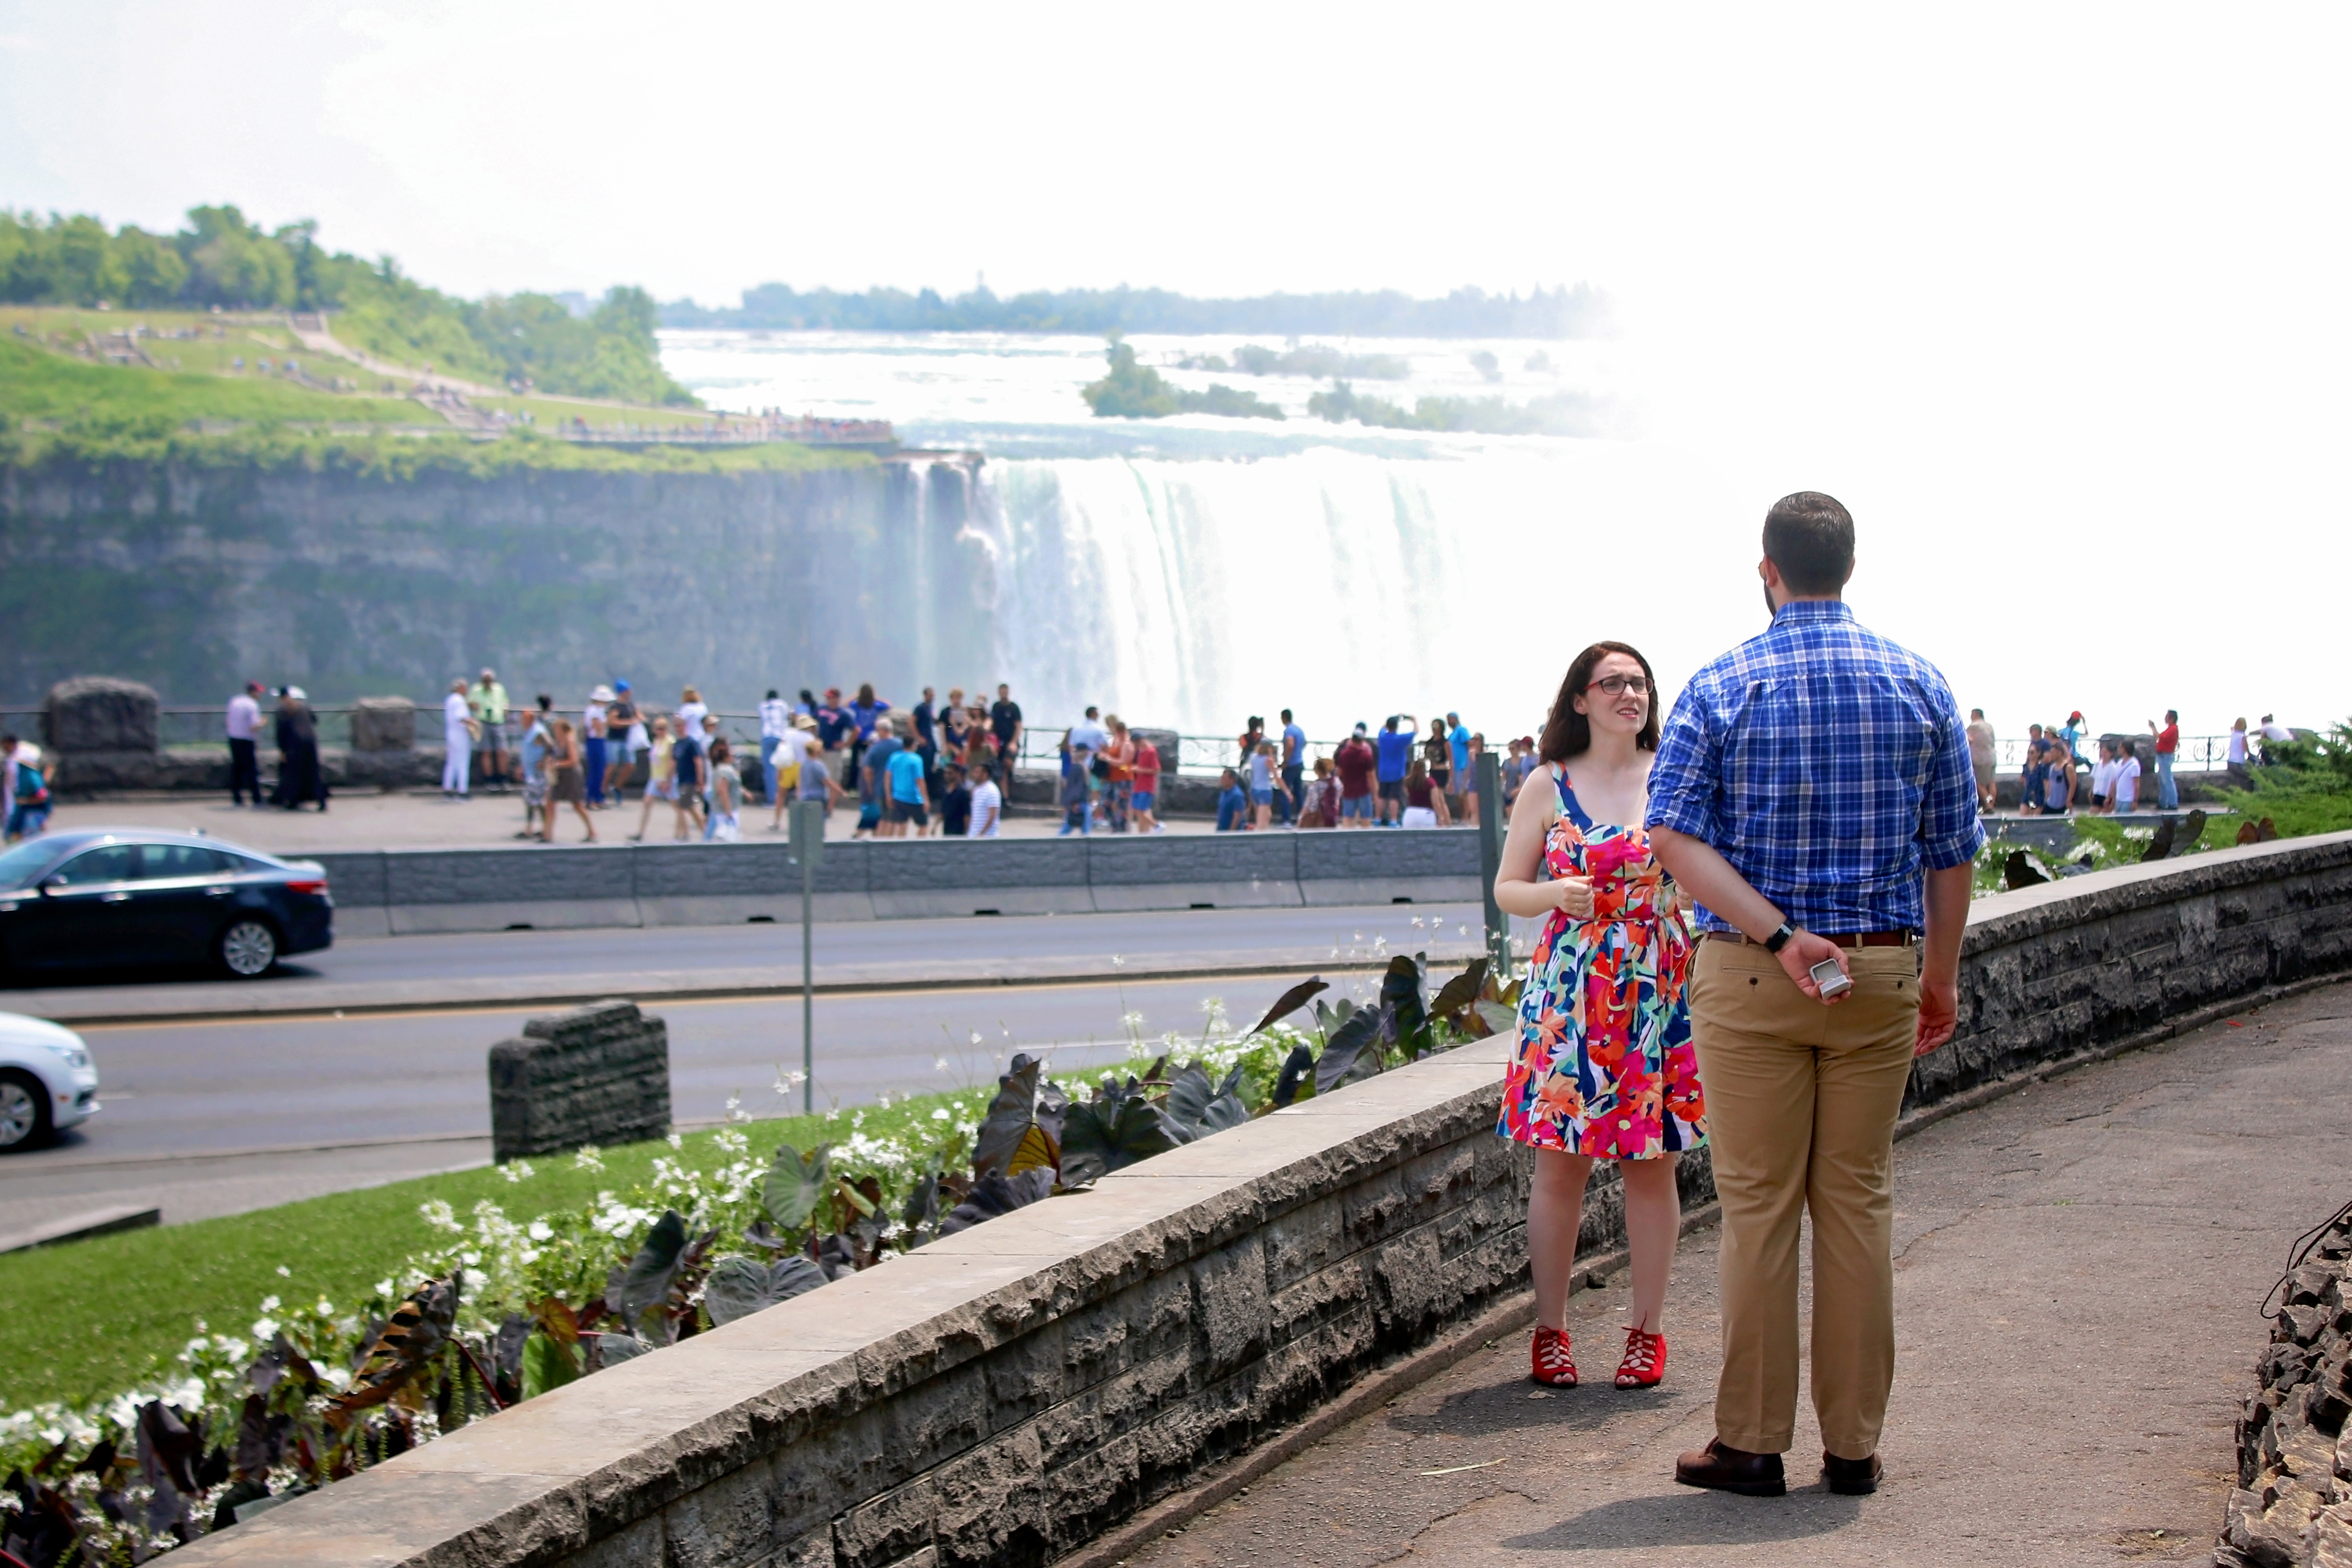 Niagara engagement photos